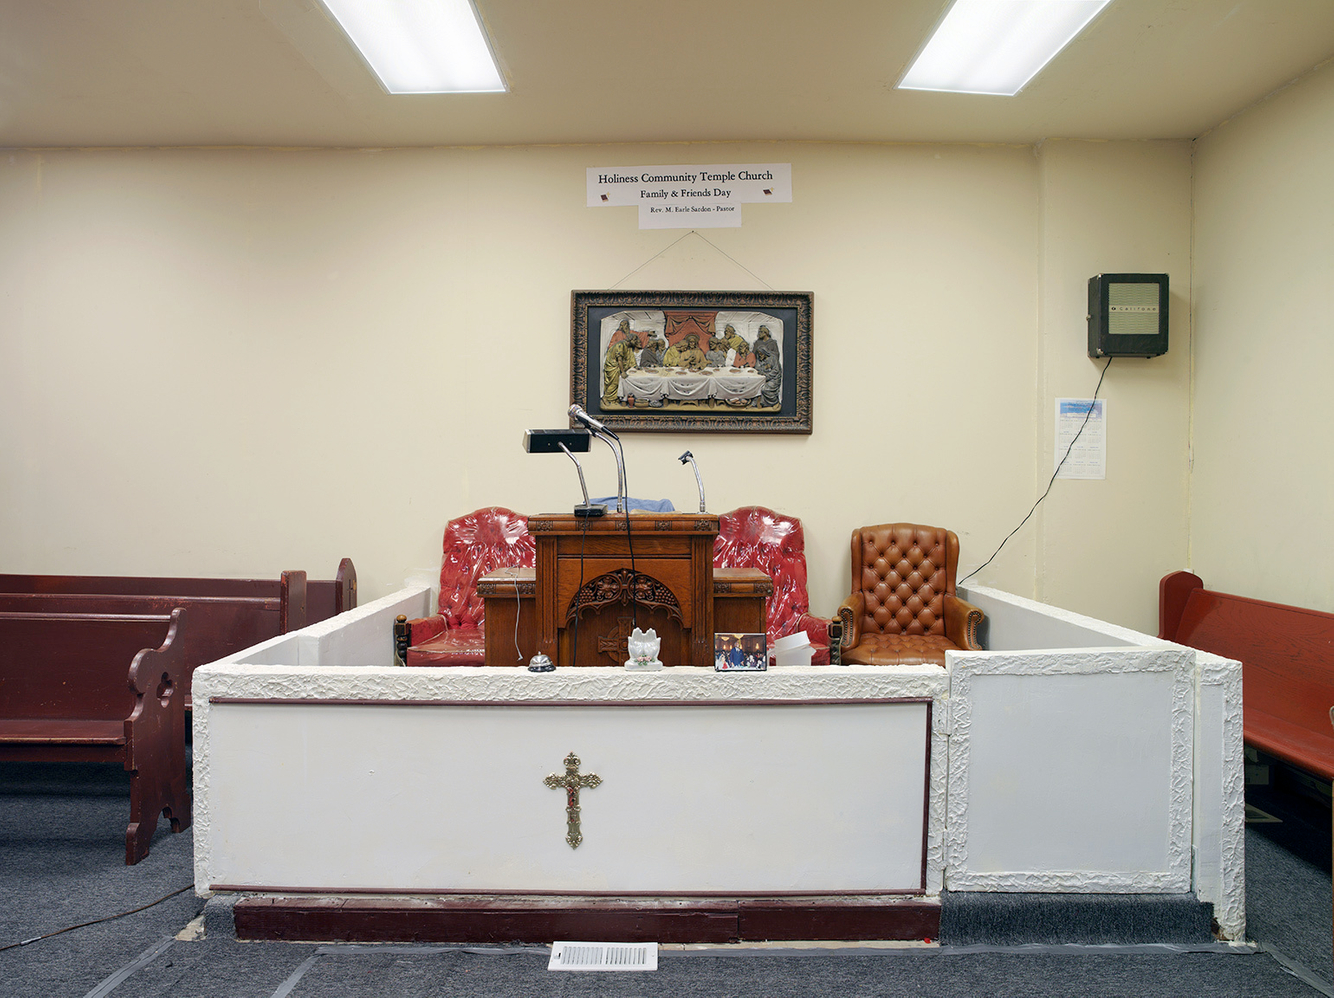 Pulpit, Holiness Community Temple Church, Chicago 2006 (former location)